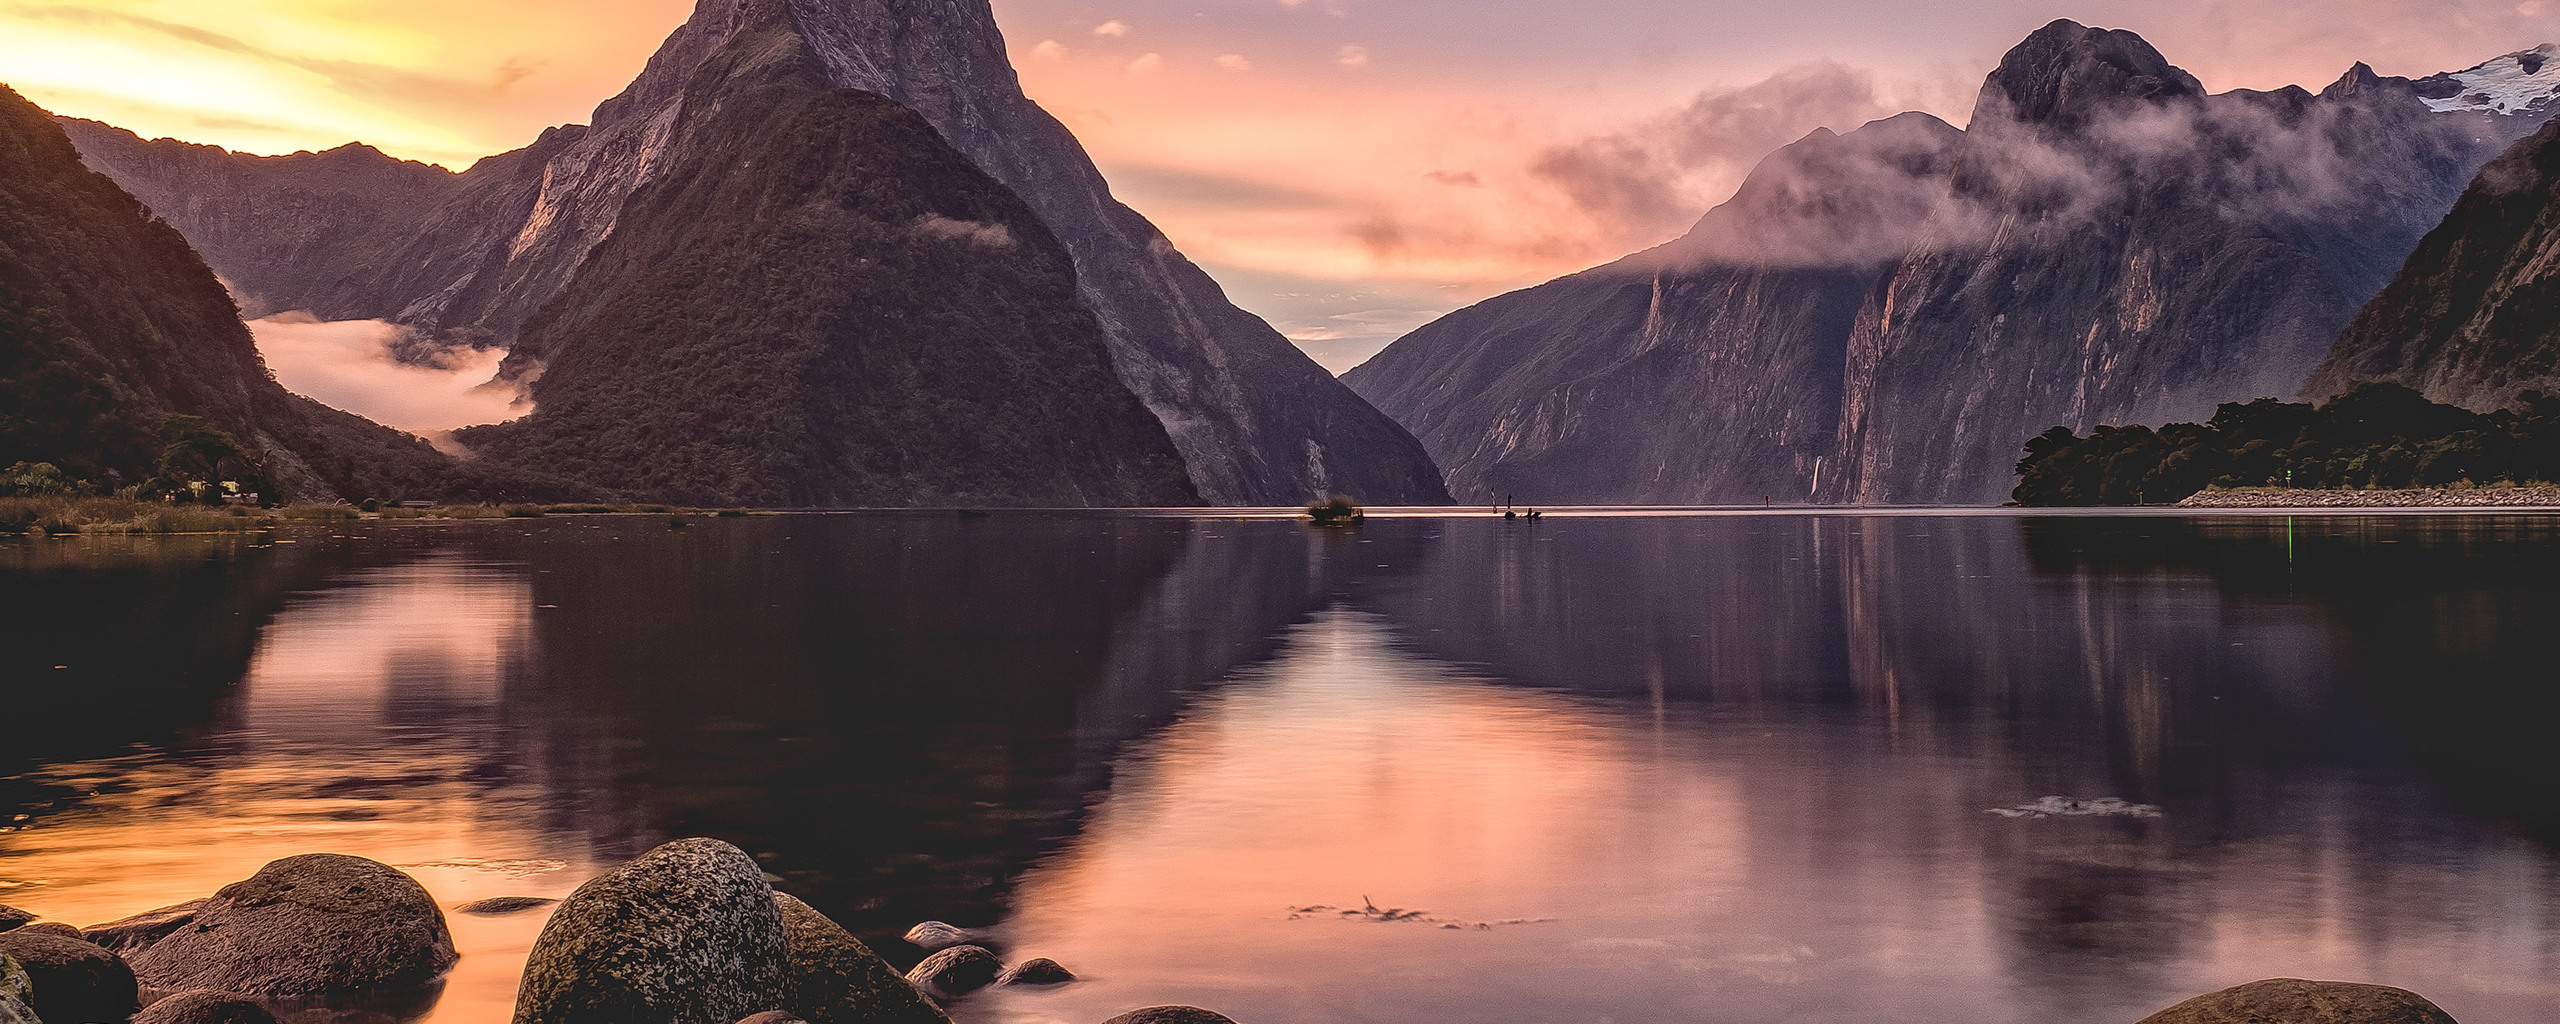 milford-sound-sunset-new-zealand-po.jpg